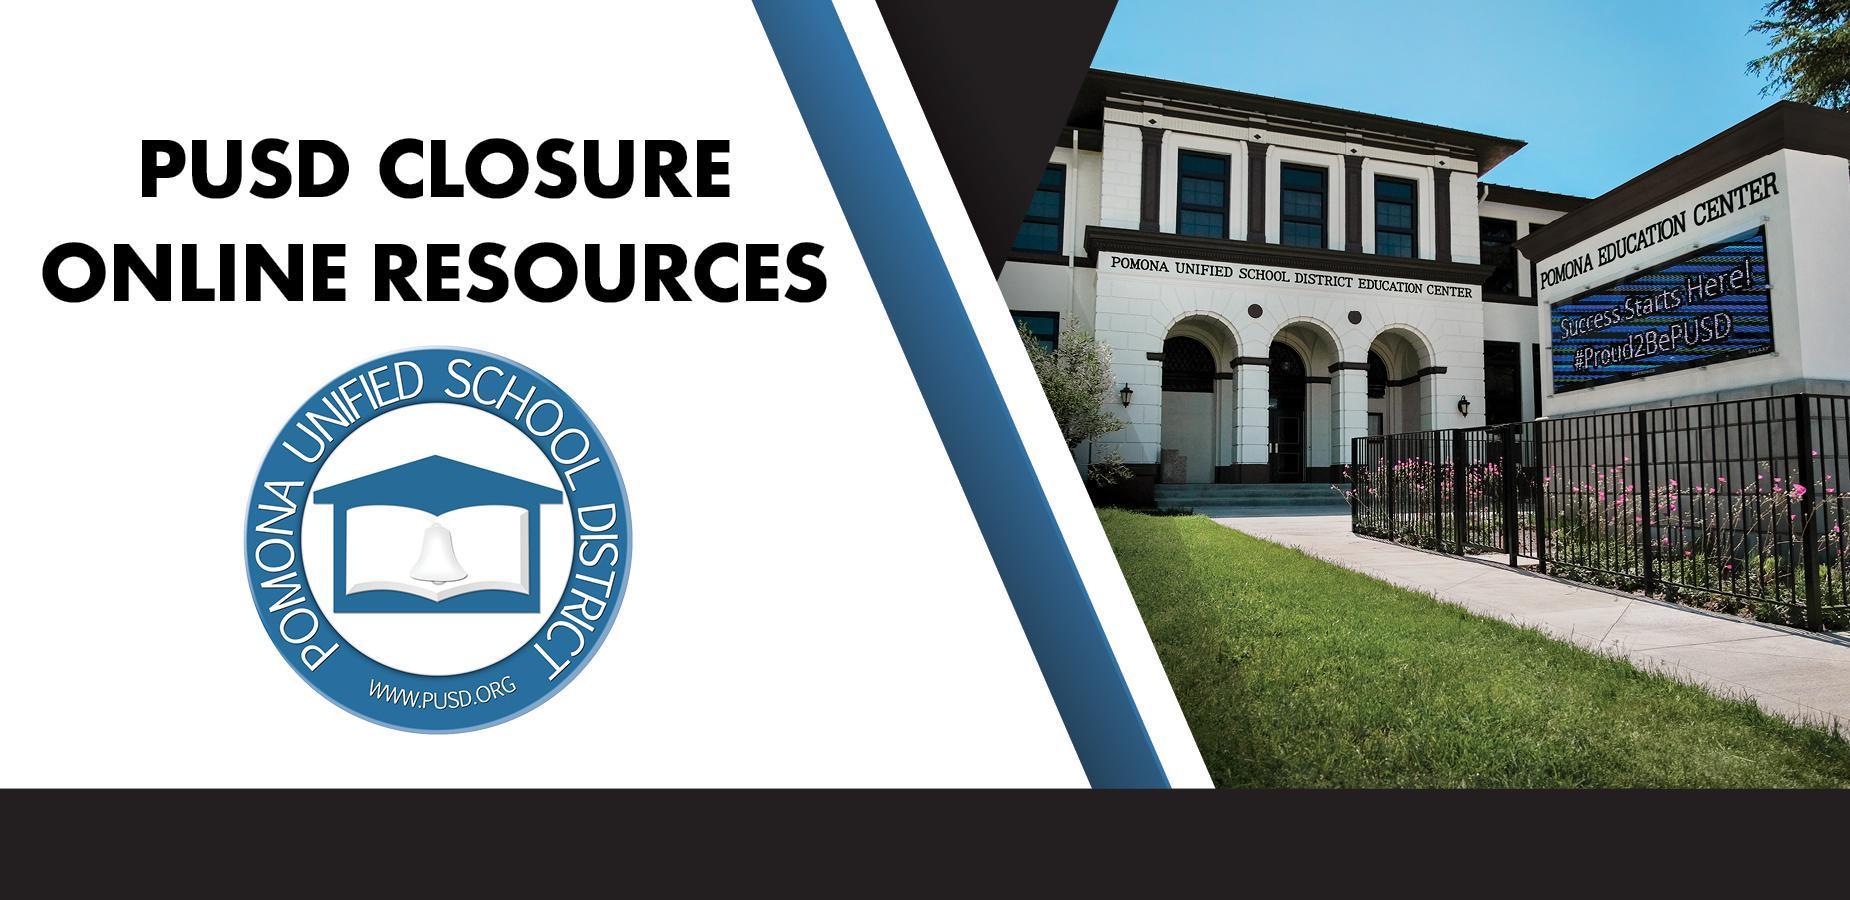 https://sites.google.com/apps.pusd.org/pusd-closure-online-resources/home